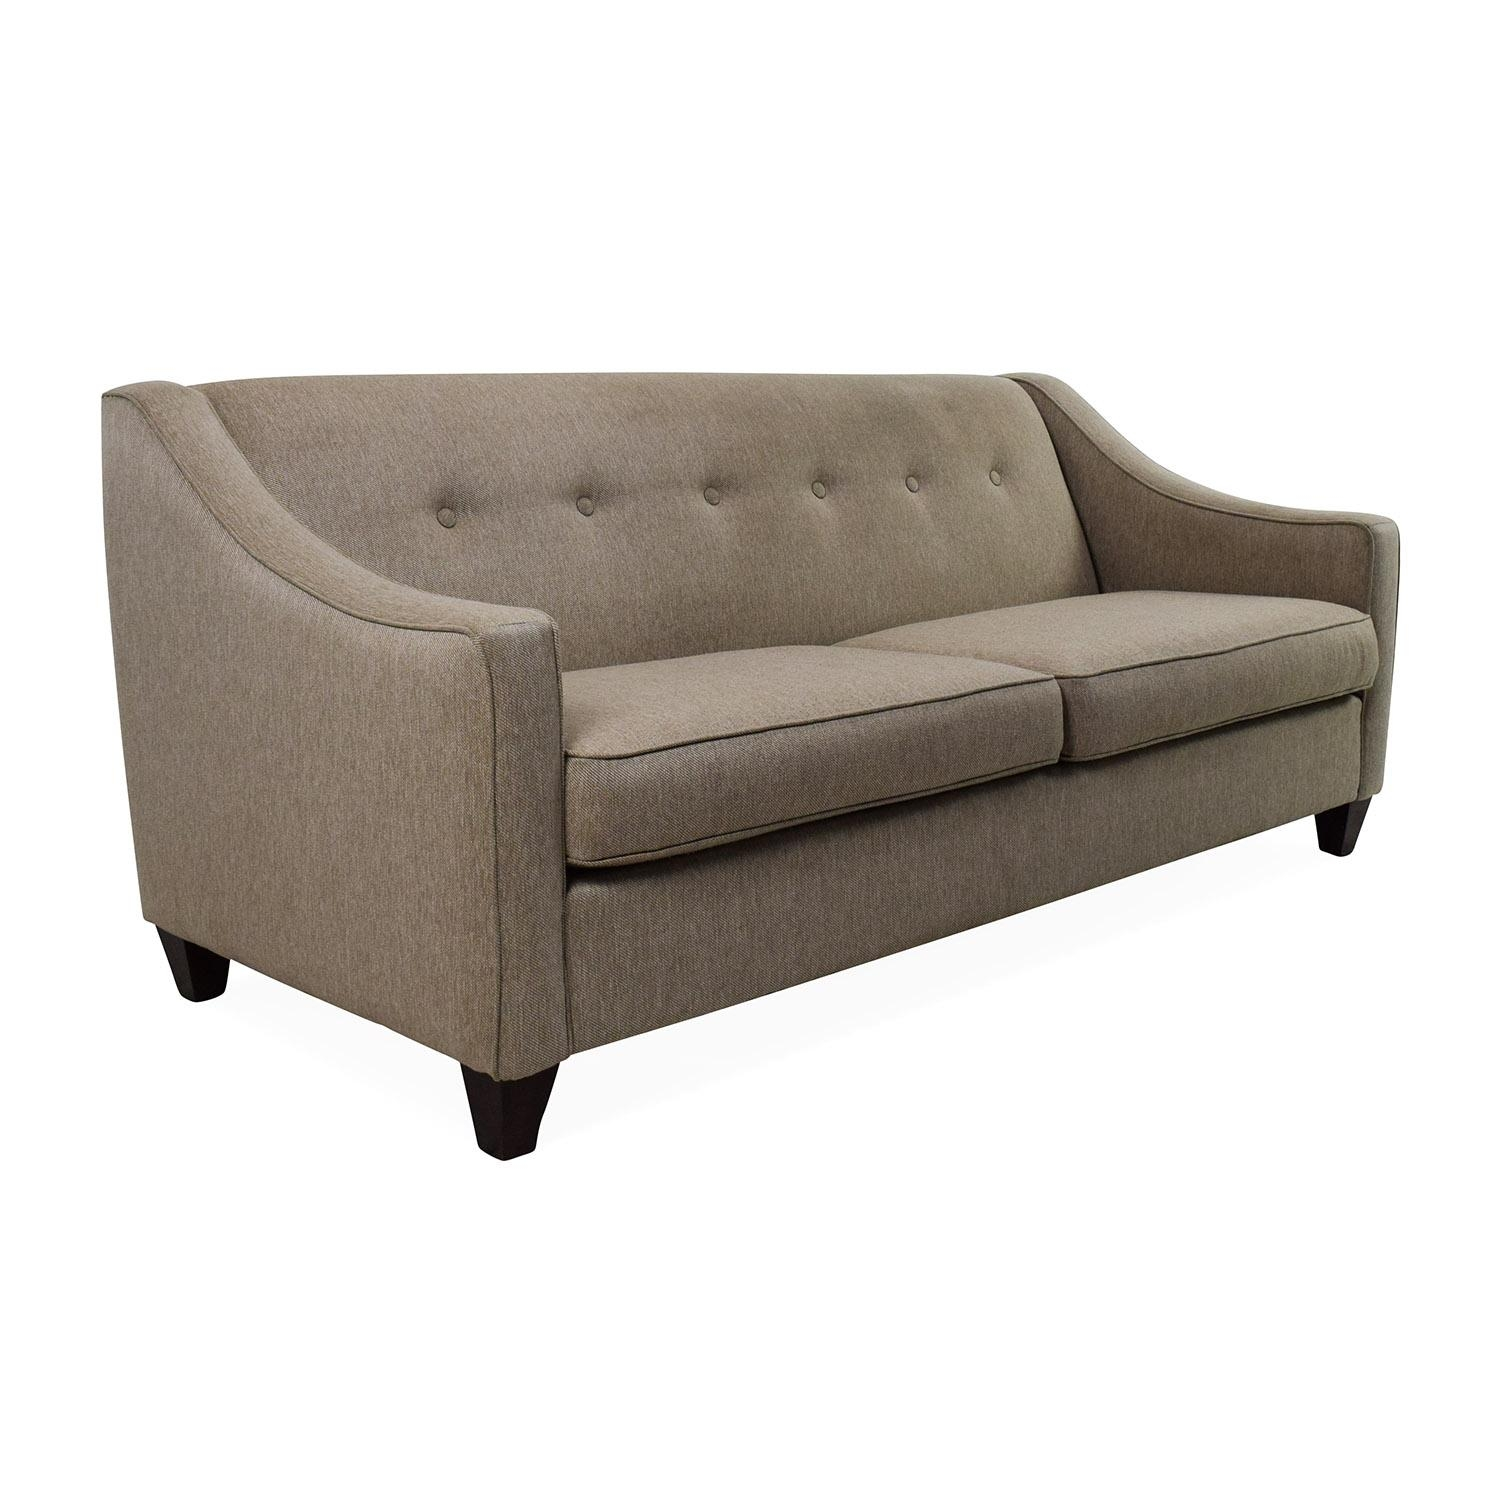 81% Off - Raymour And Flanigan Raymour & Flanigan Ashton Sofa / Sofas intended for Ashton Sofas